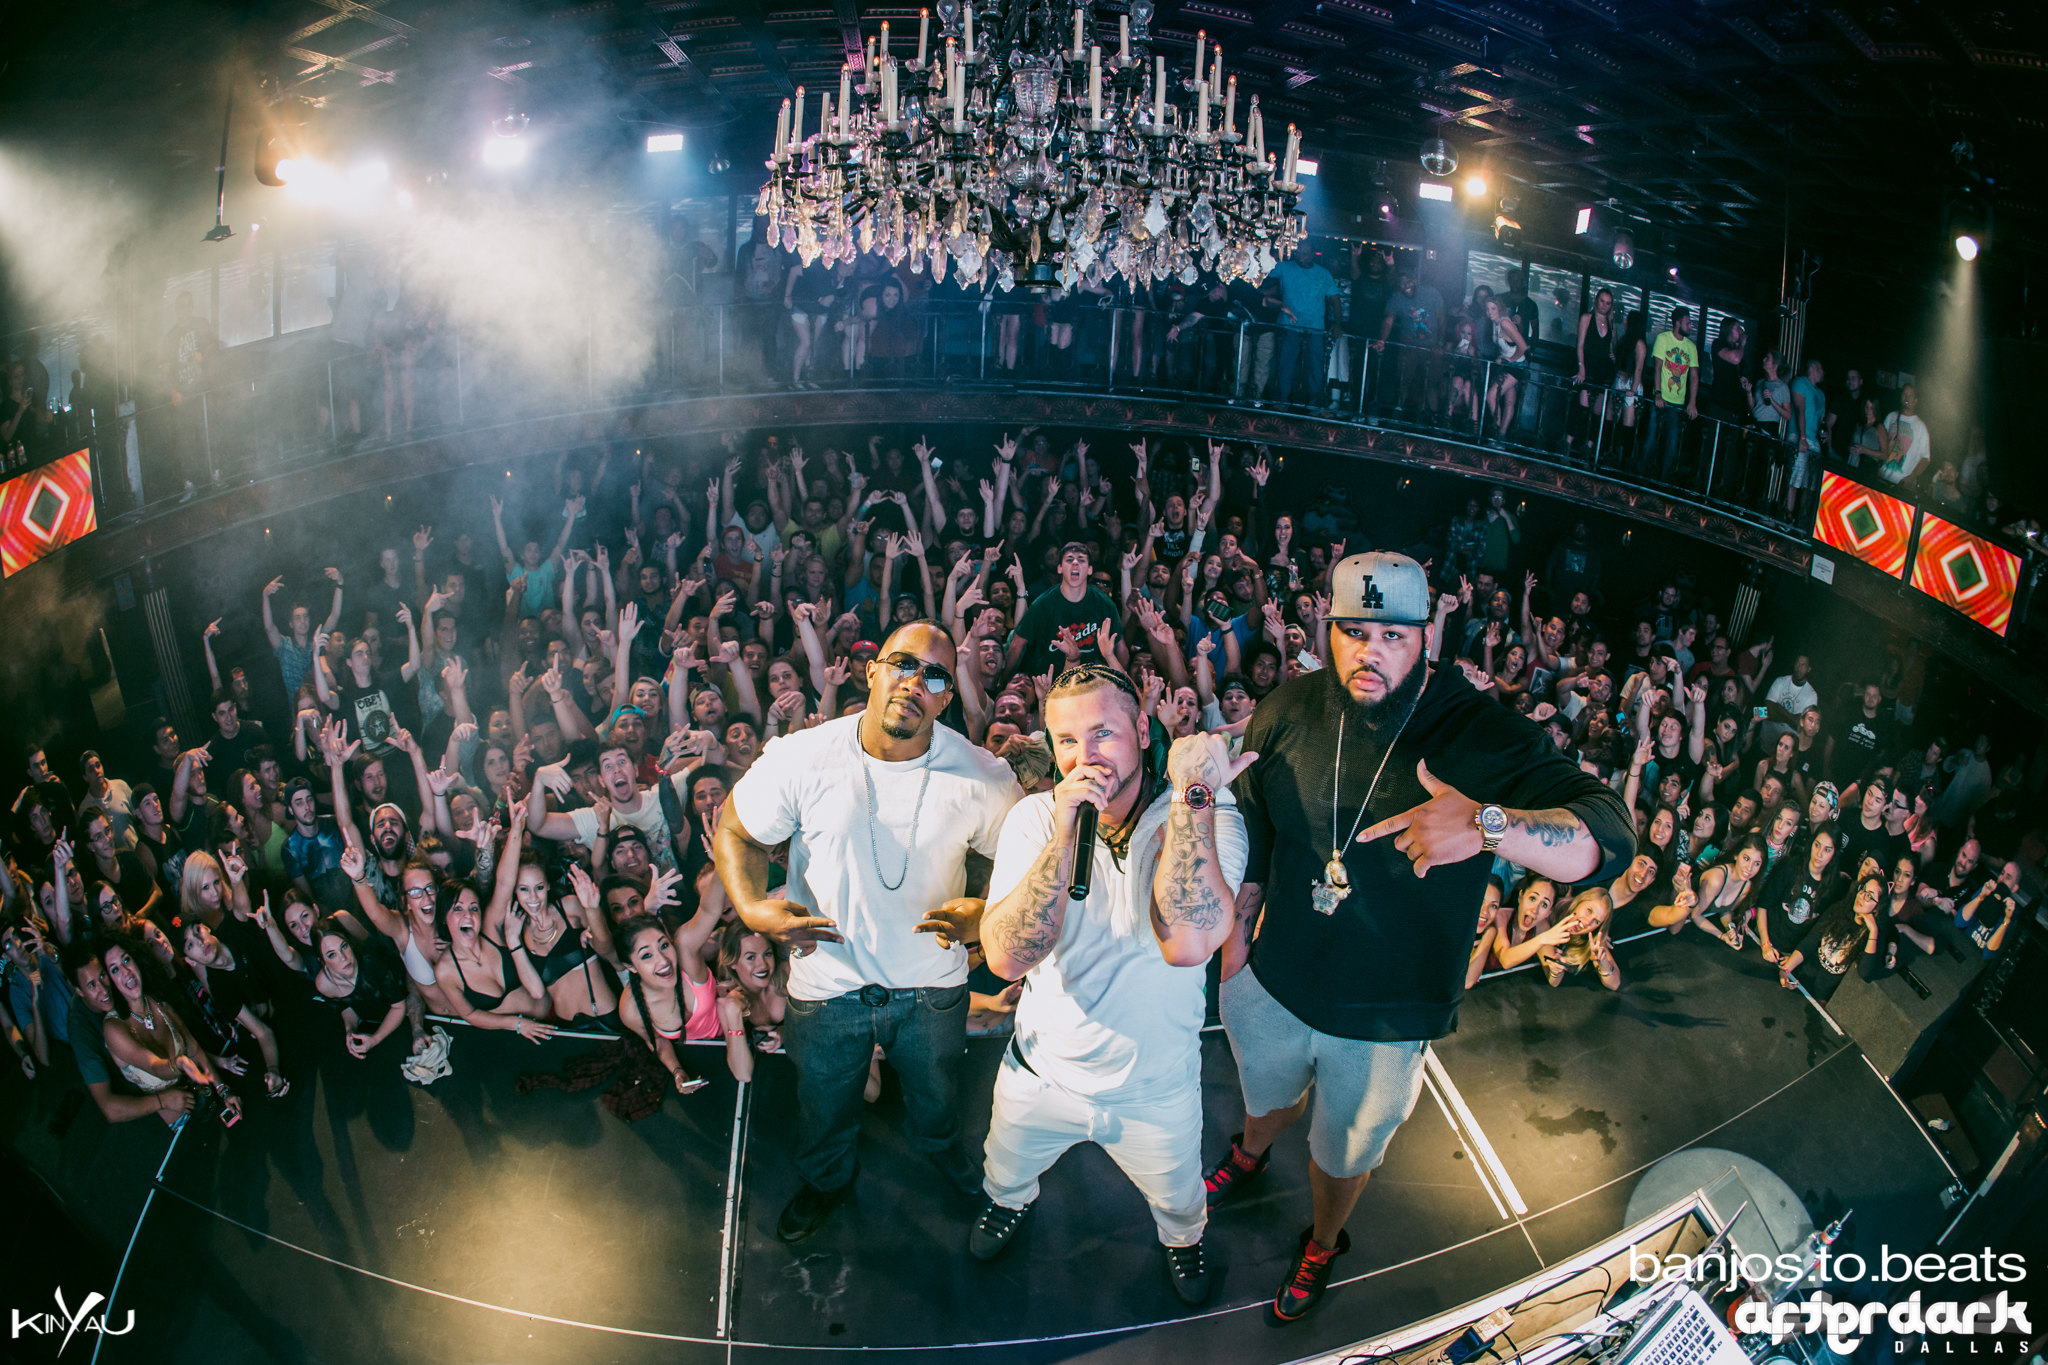 Riff Raff Live In Dallas Banjos To Beats